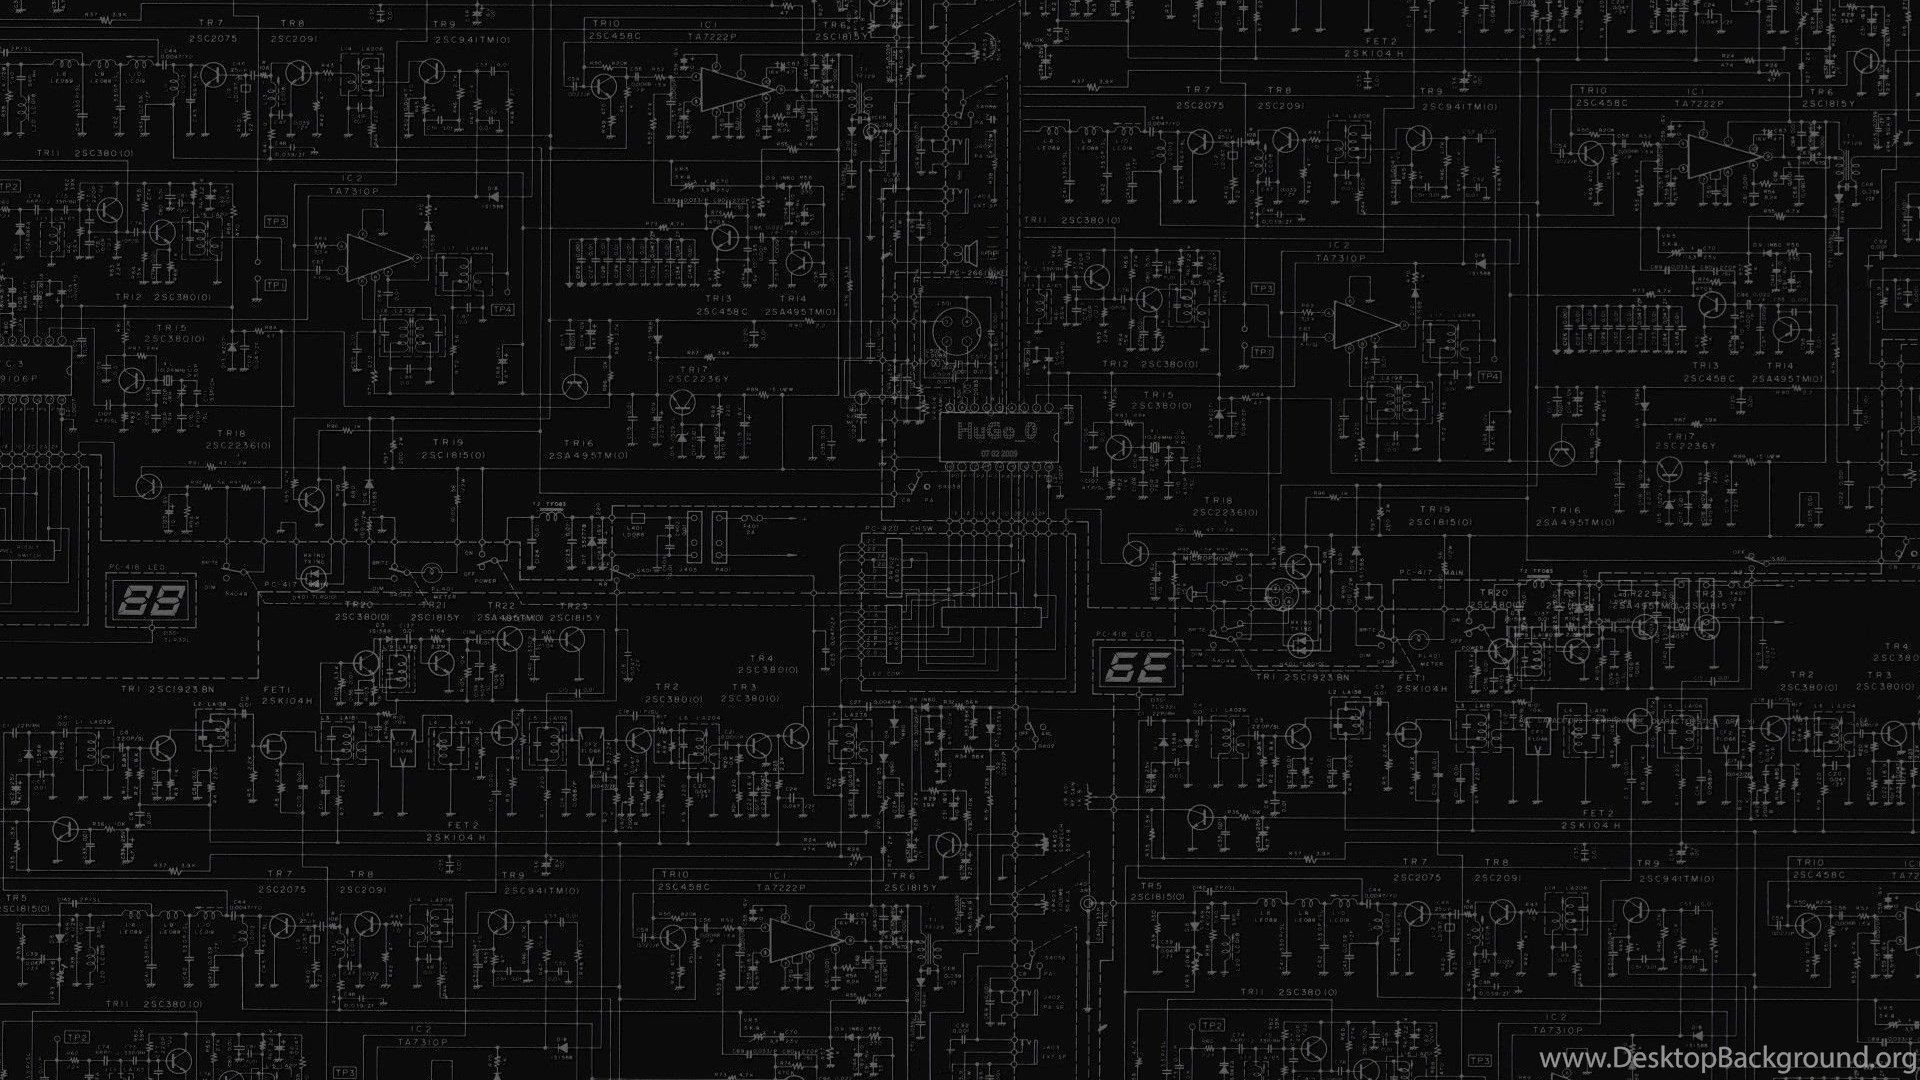 Cool Dark Computer Backgrounds Hd Wallpapers X H on Iphone 3gs Motherboard Diagram